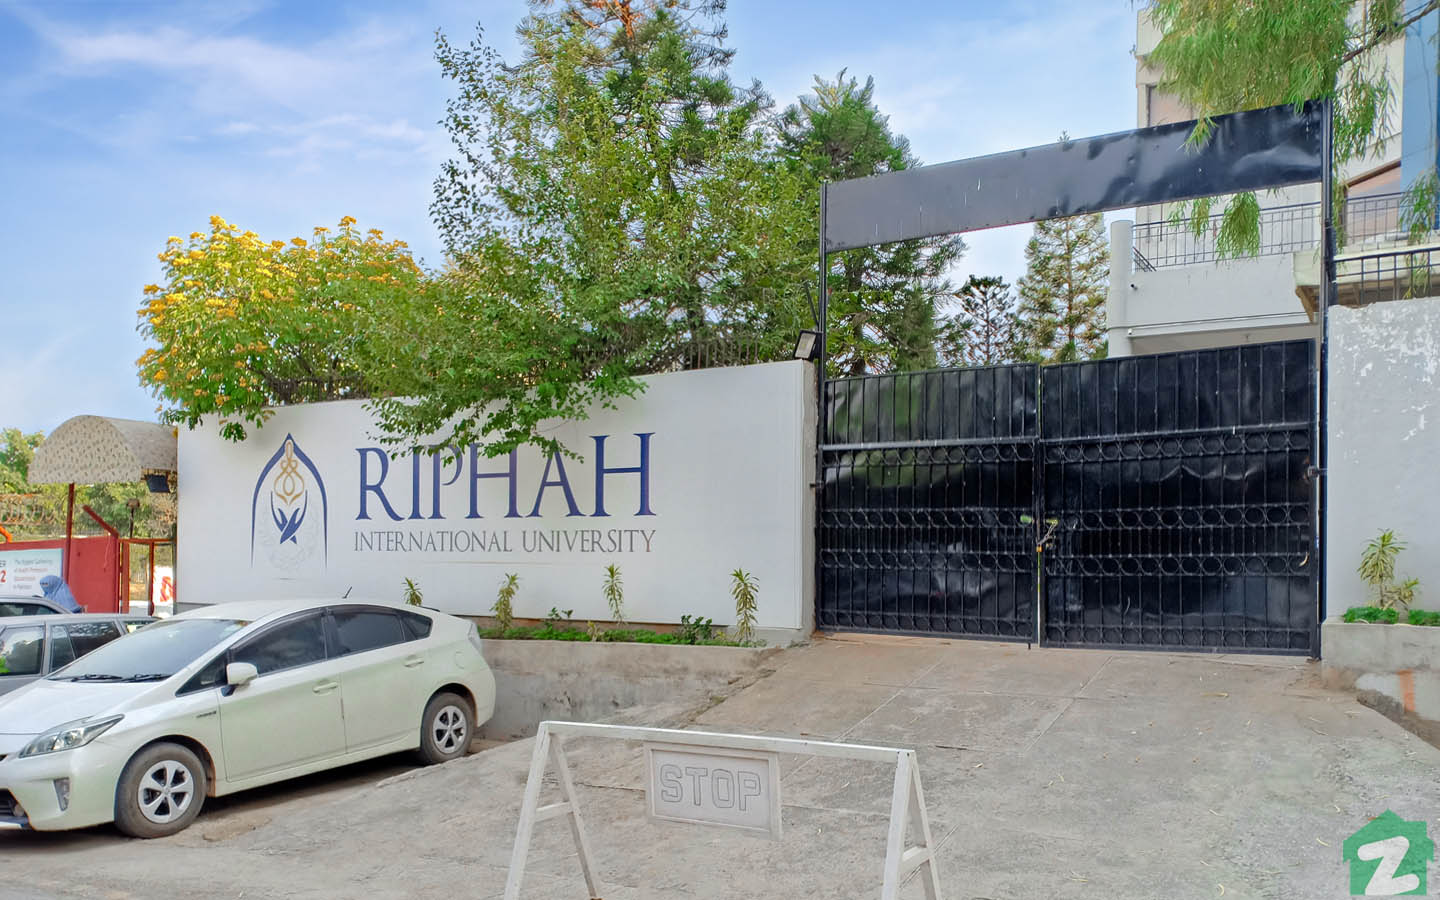 Riphah International University is a popular choice in Islamabad.